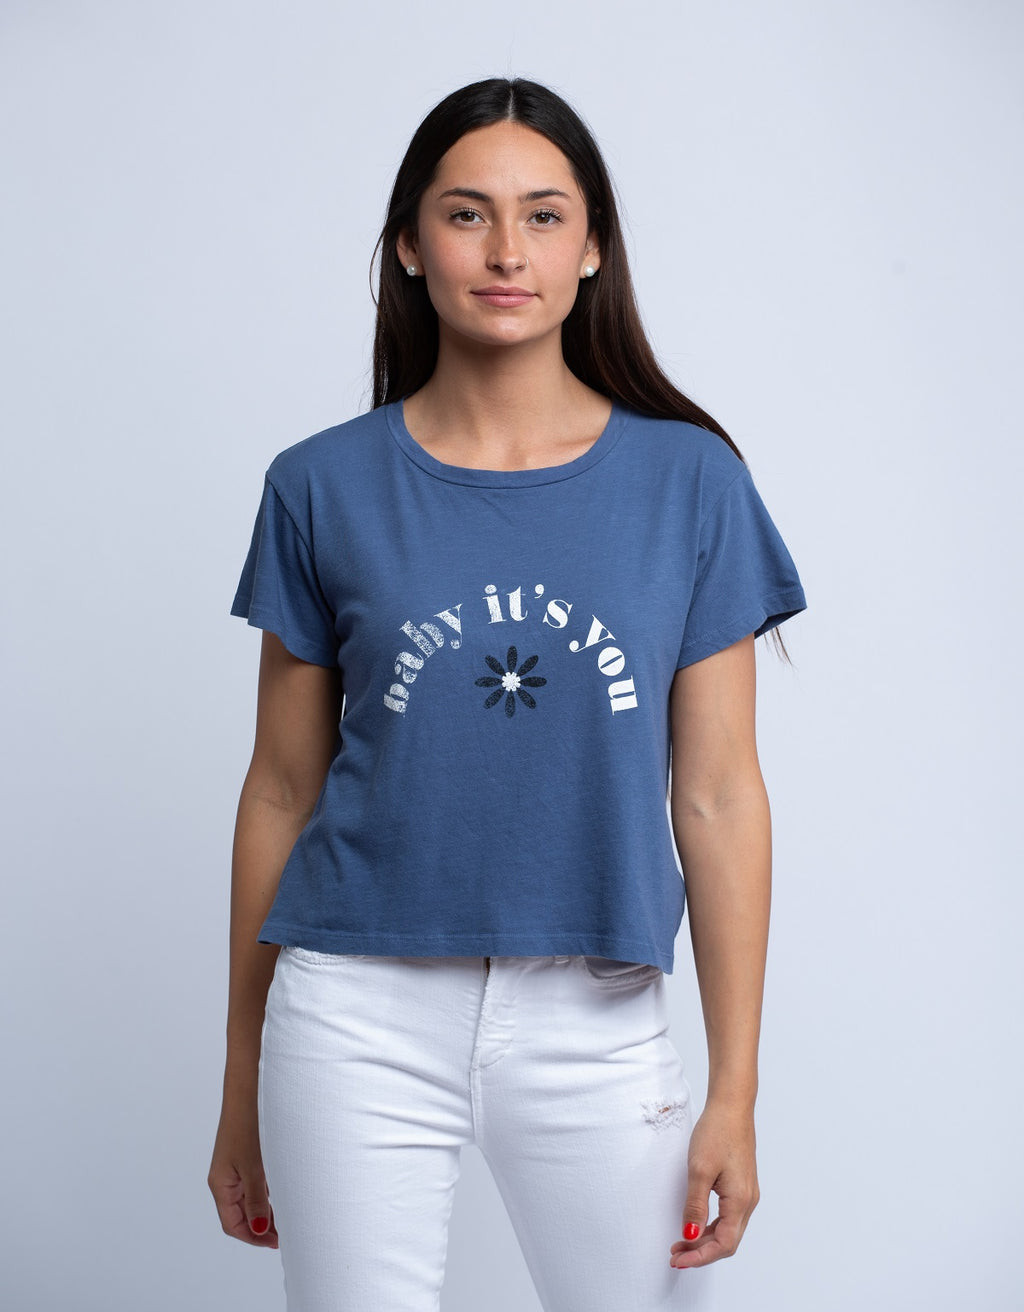 LNA<br>Baby It's You Tee - Trendy Fox Boutique